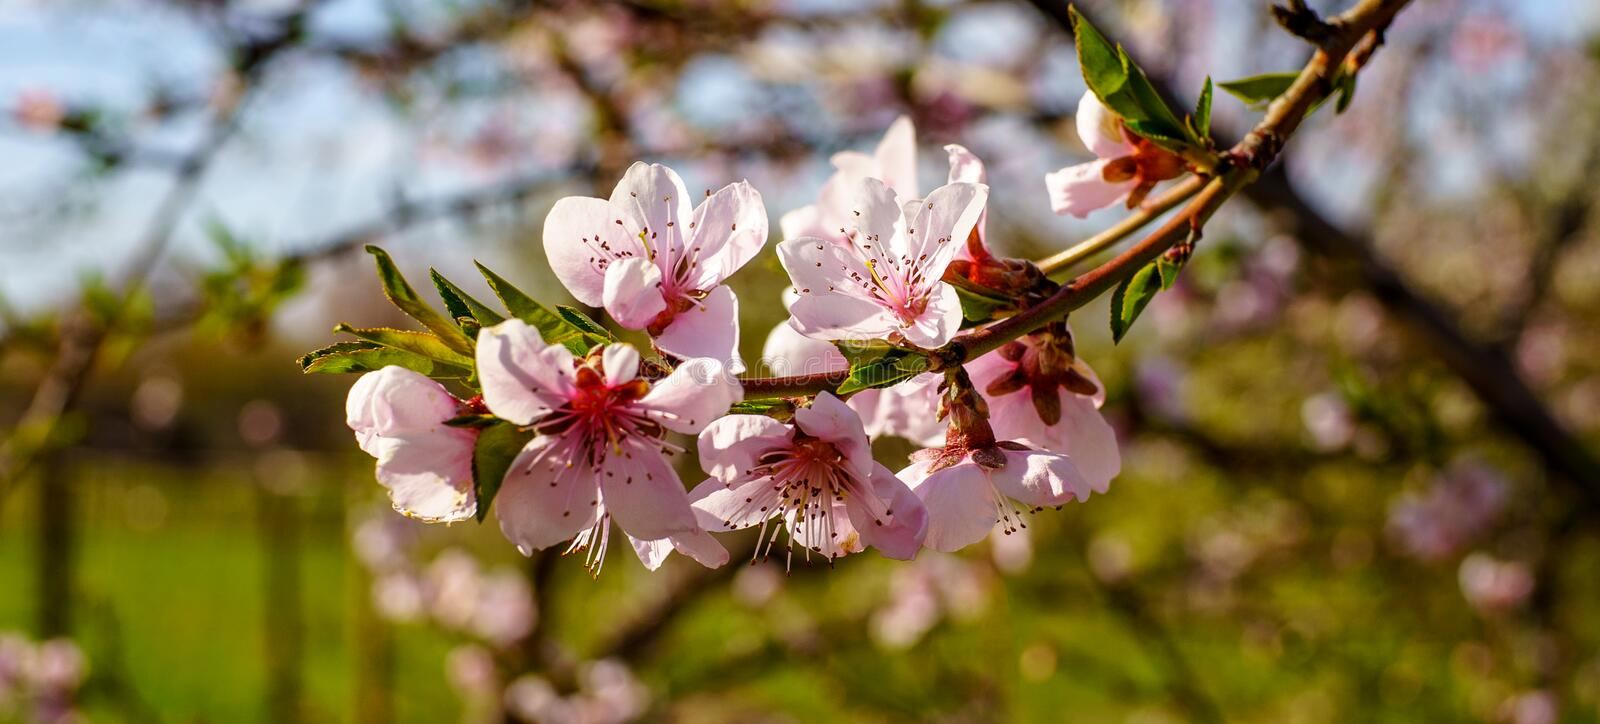 Macro photography of blossom peach branch with beautiful pink flowers and small young green leaves in the garden in spring royalty free stock images